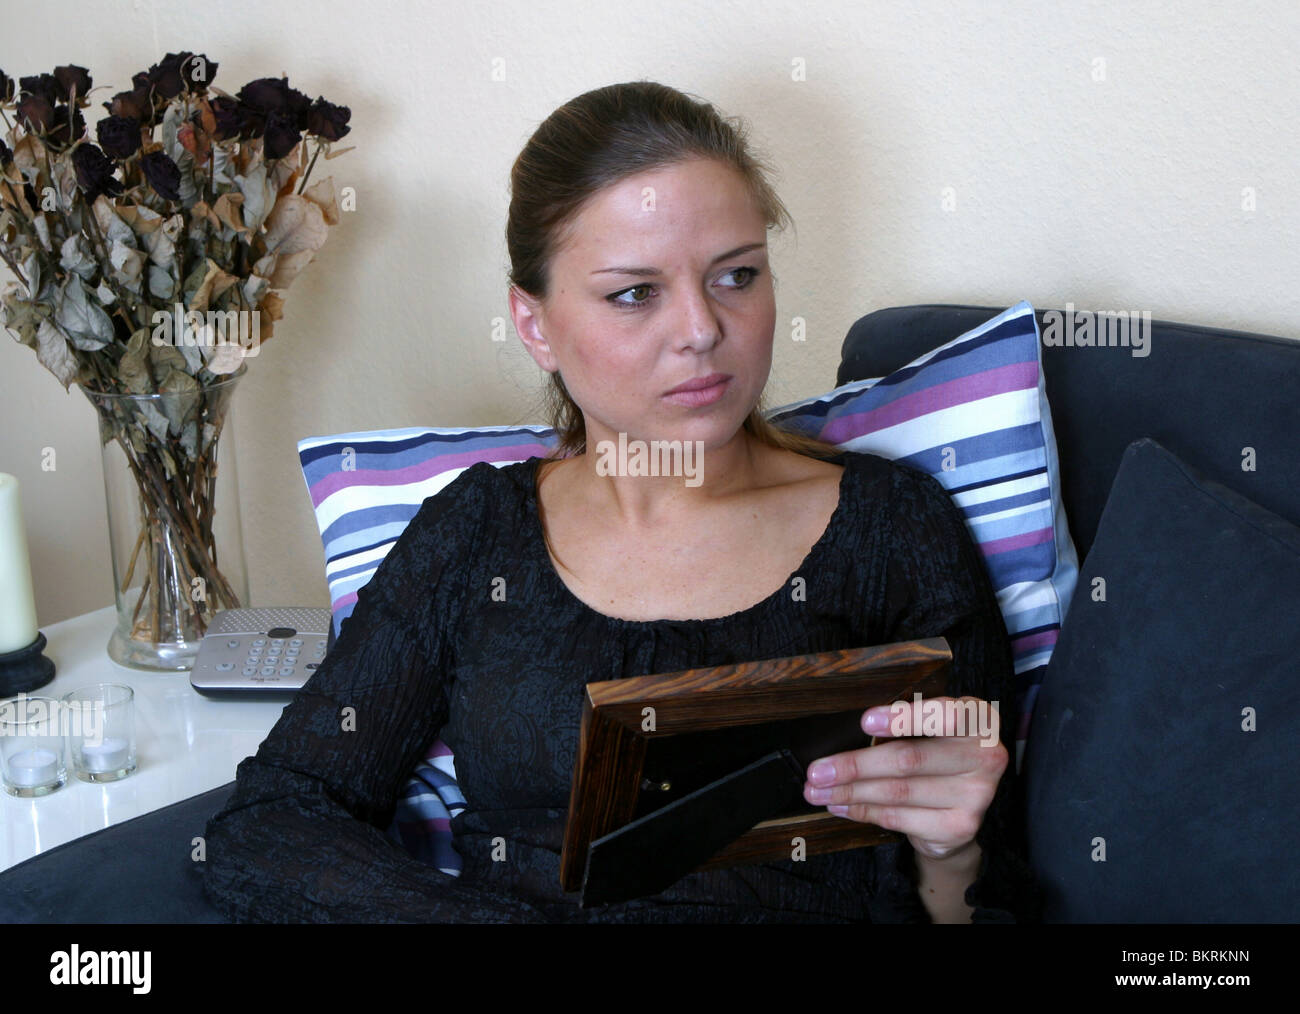 Front view head and shoulders from a woman holding photo frame in hand sitting on couch indoors and looking worried - Stock Image